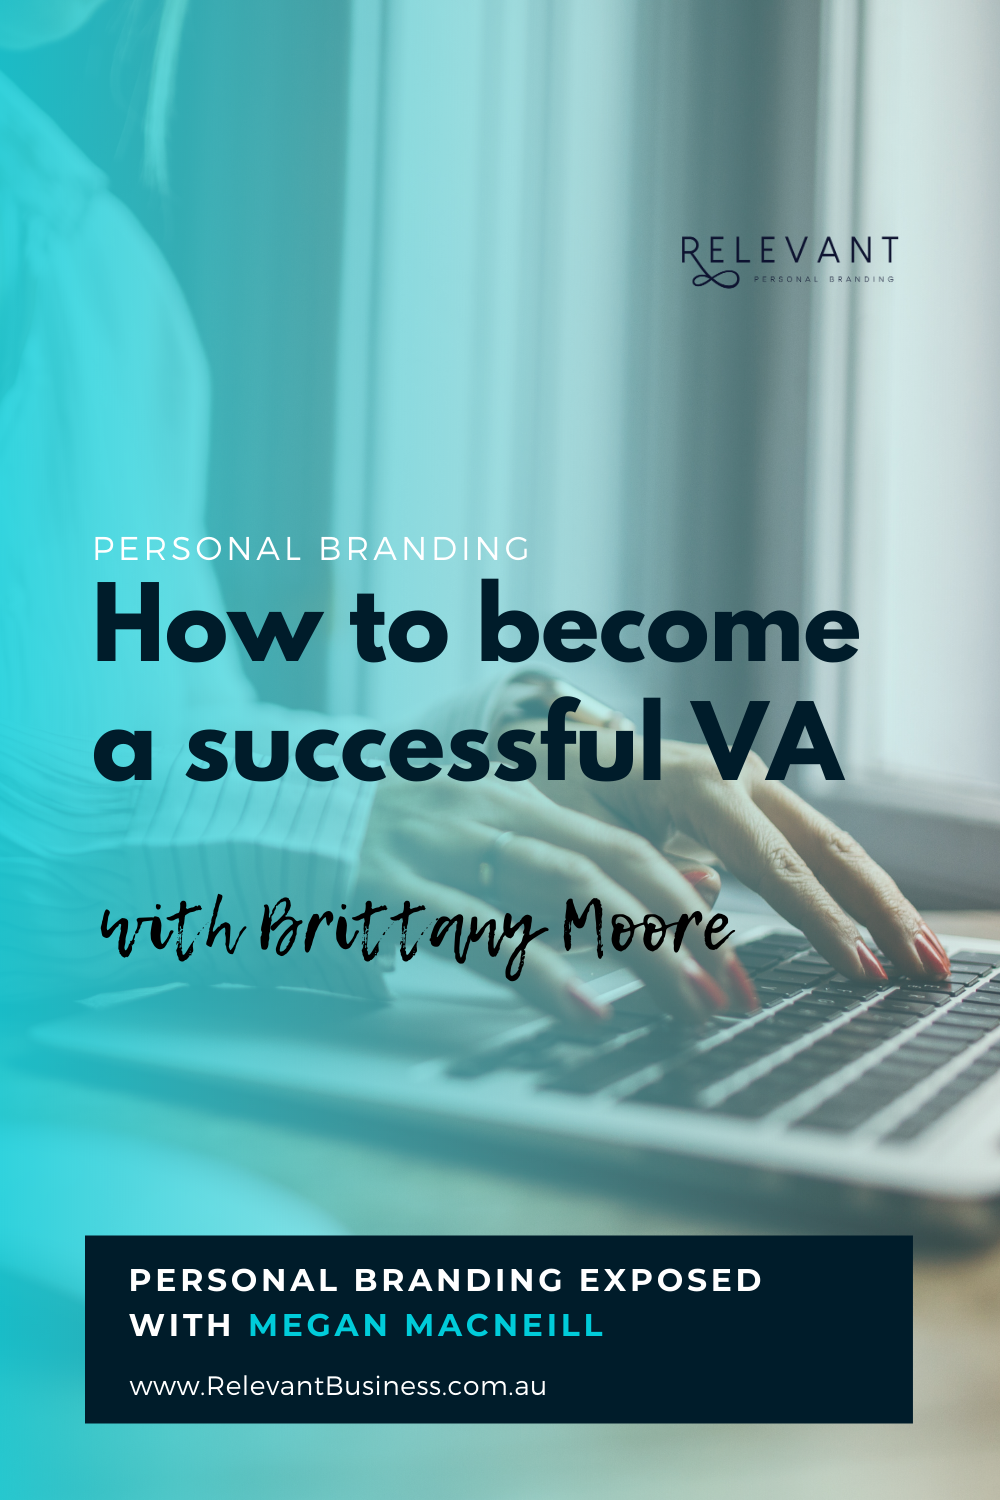 How to become a successful VA with Brittany Moore